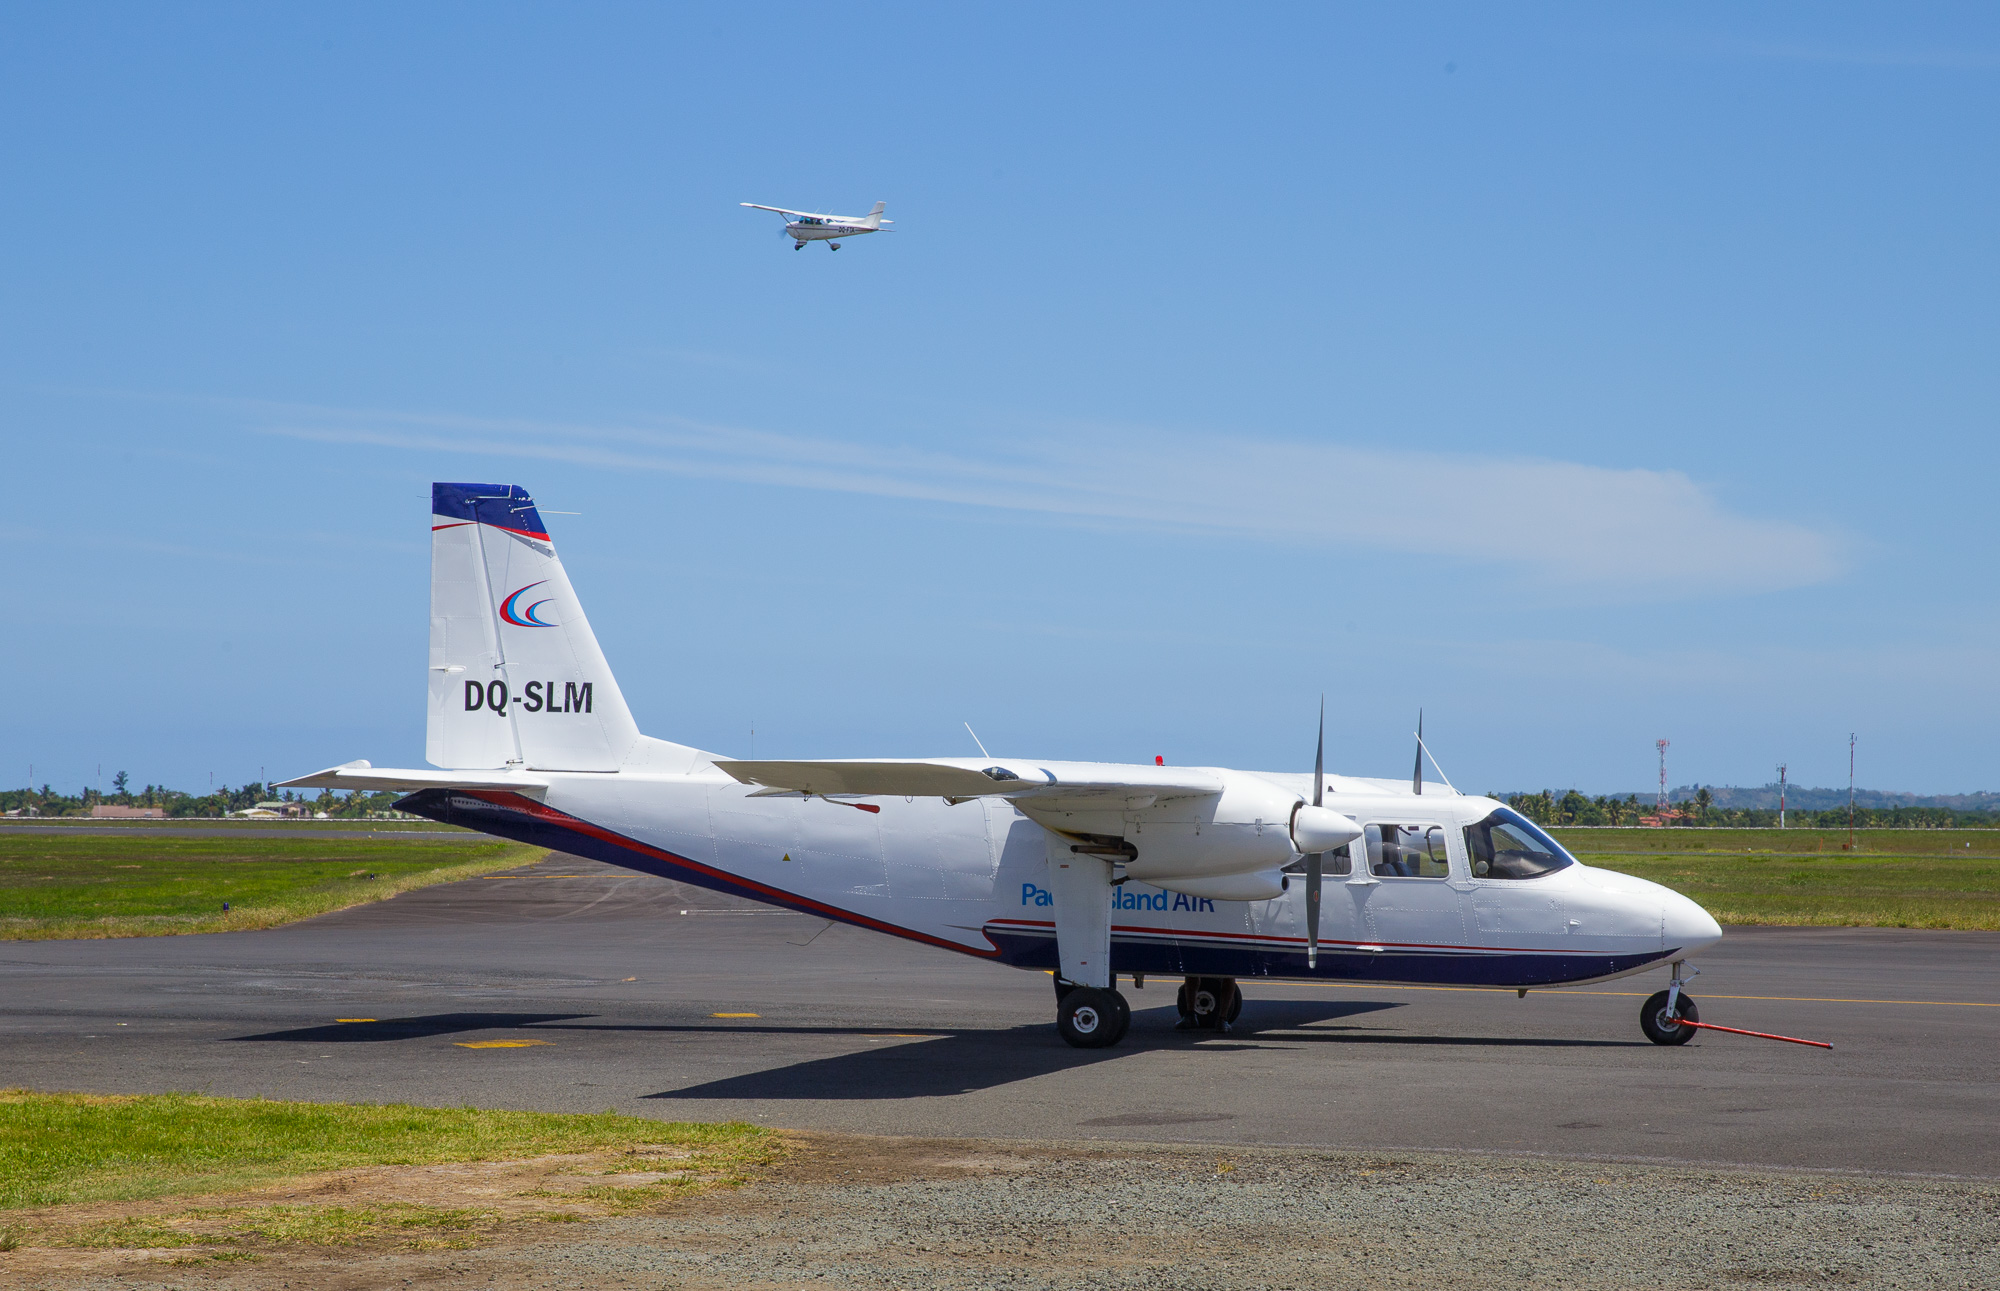 Pacific_Island_Air_DQ-SLM_parked_at_Nadi_International_Airport,_Fiji